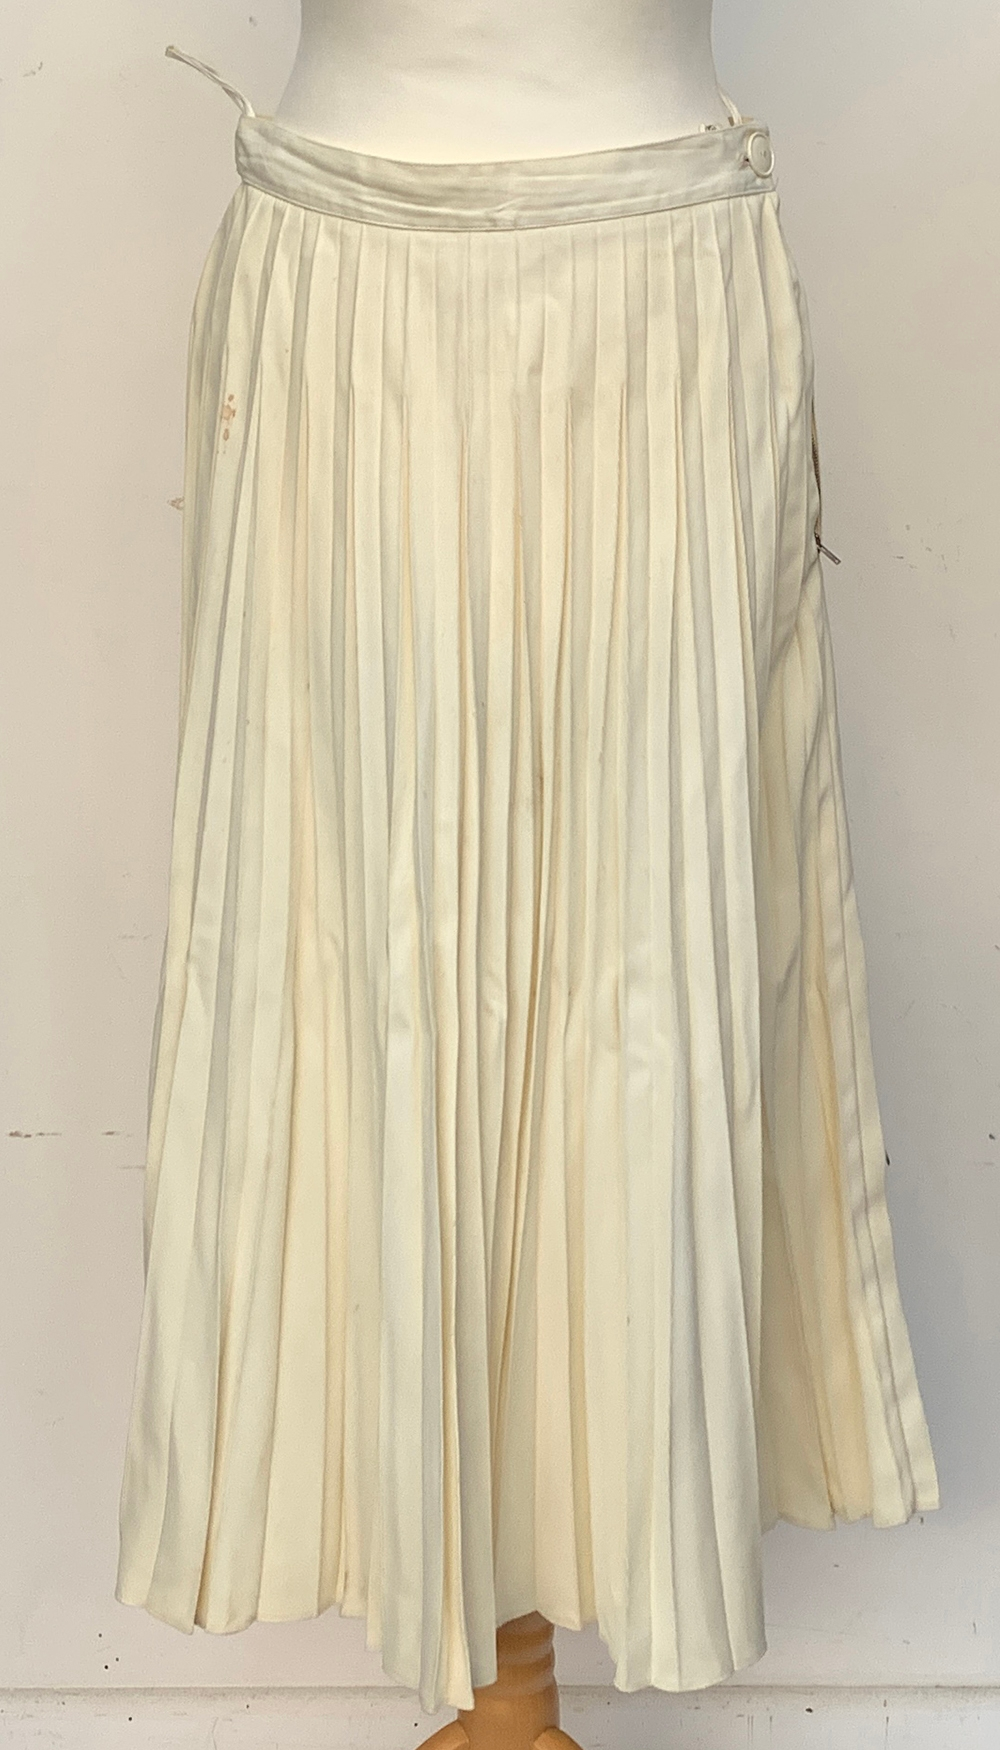 A vintage Lilywhites tennis skirt, together with an underskirt, hooped skirt, etc, in a large